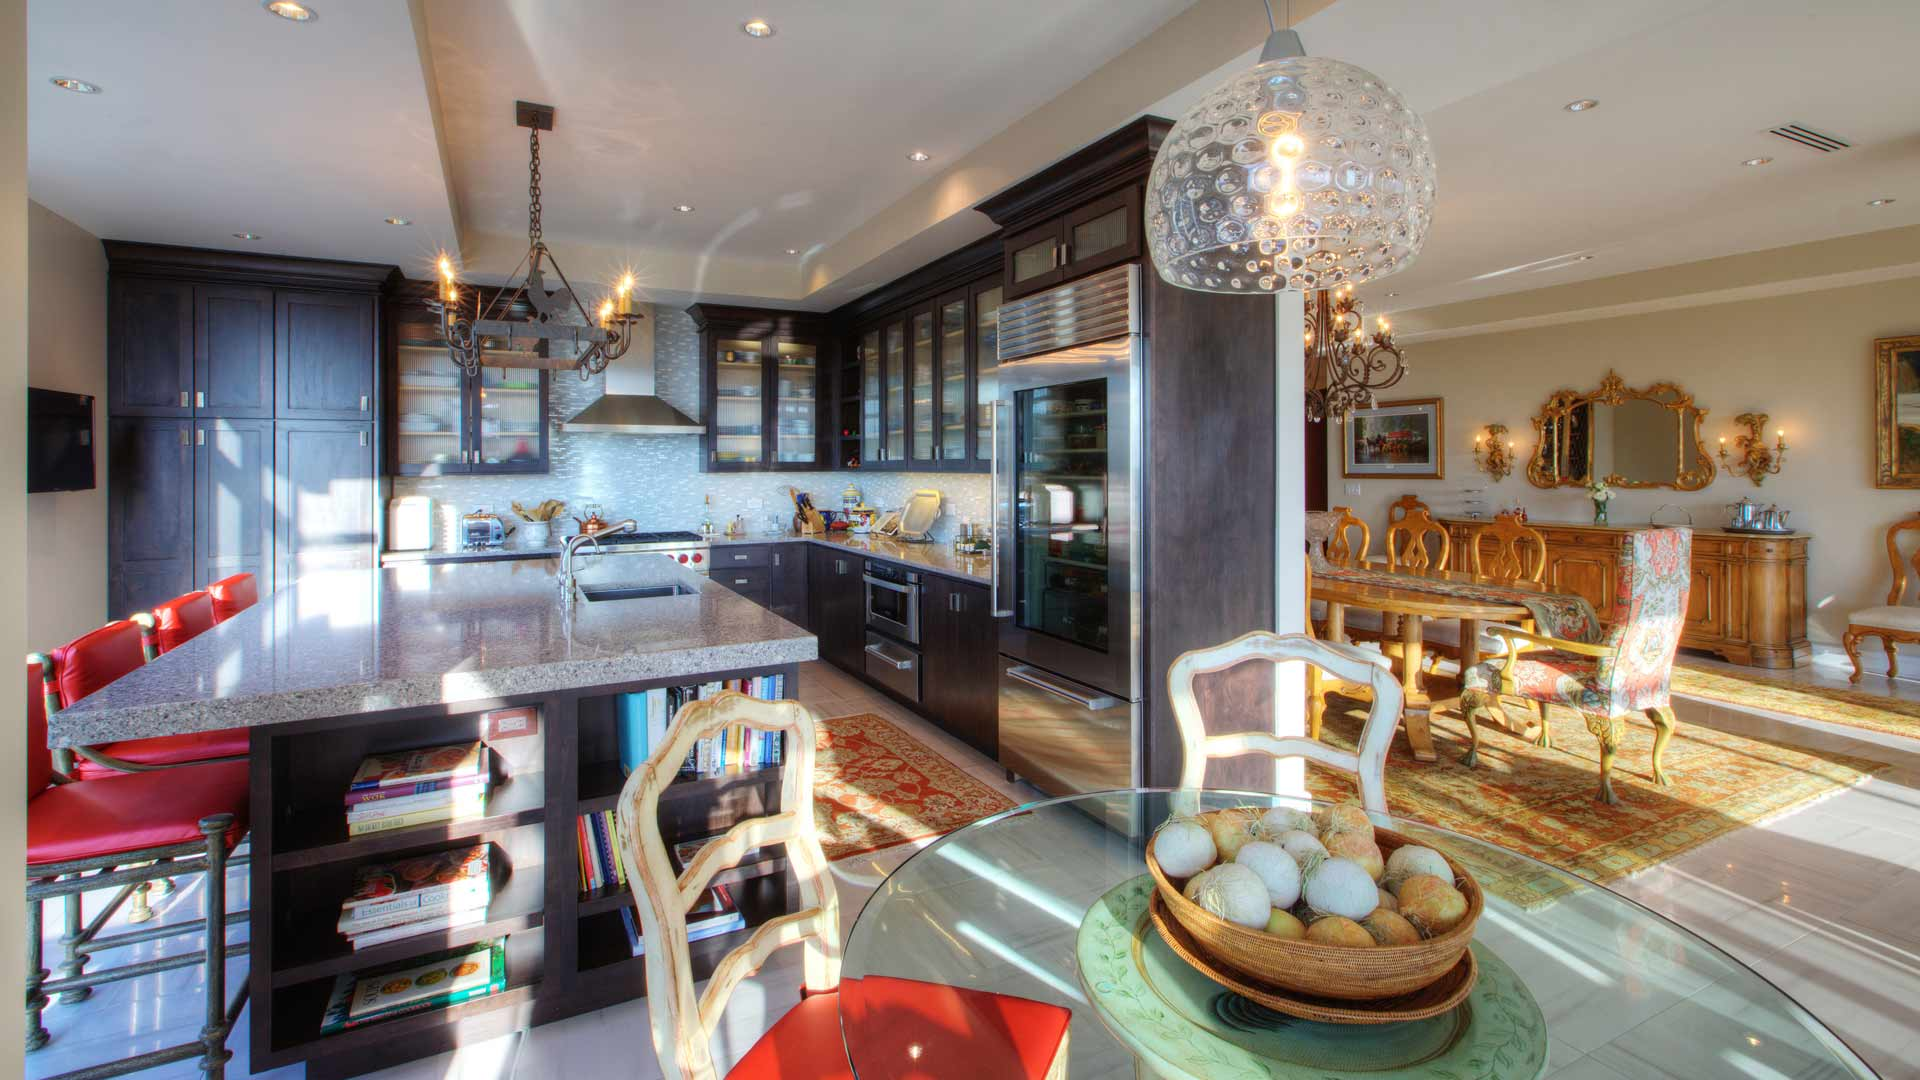 Kitchen + Dining Areas - Eclectic Modern Interior - Indianapolis, IN